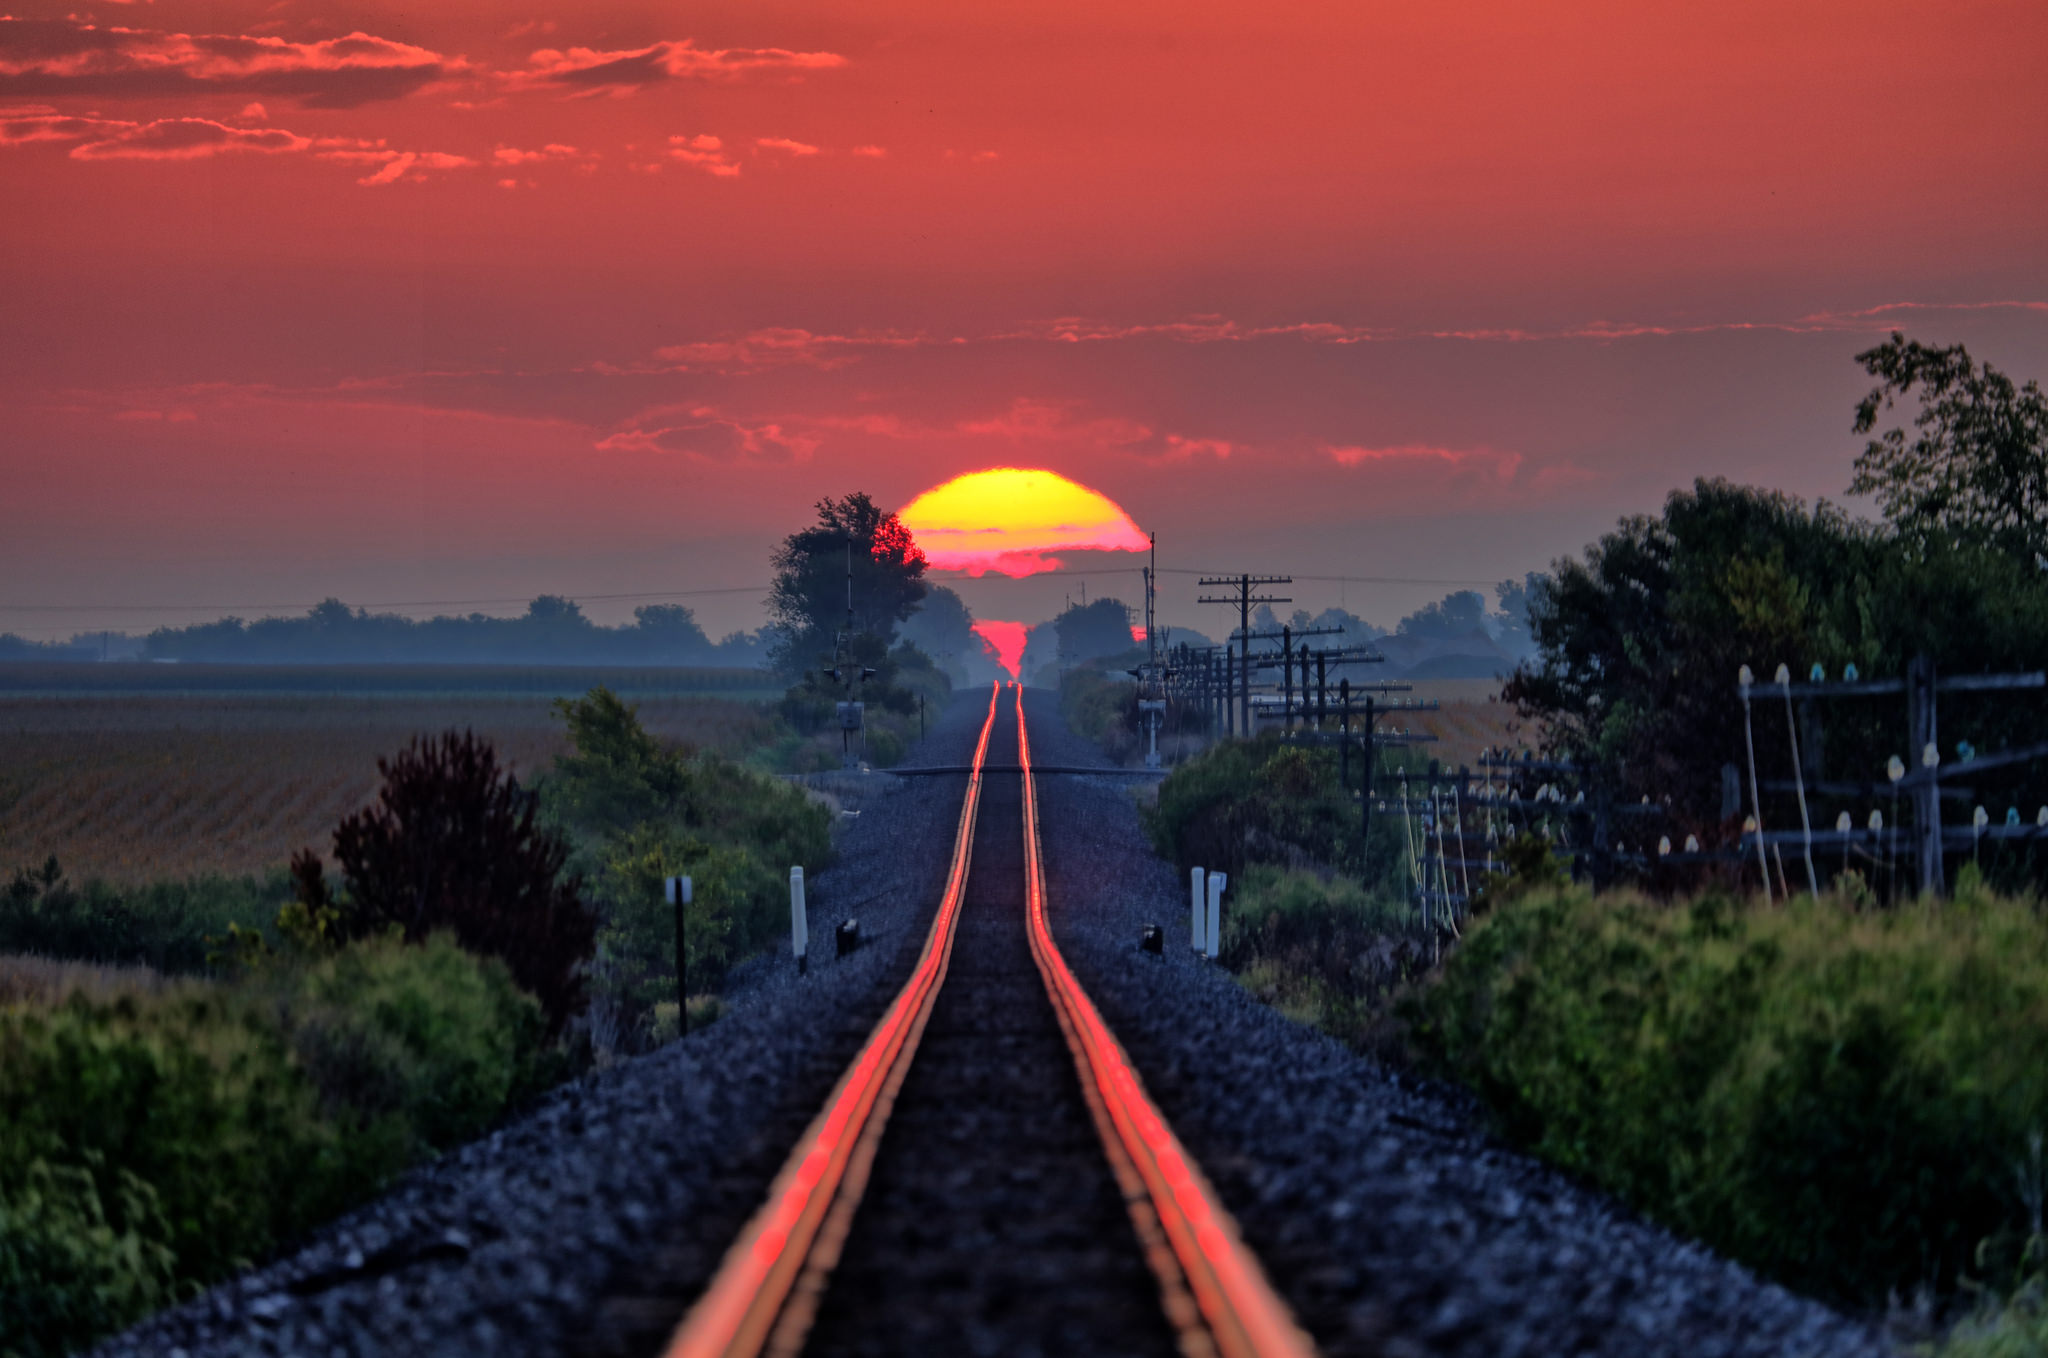 Sunrise on the Rails